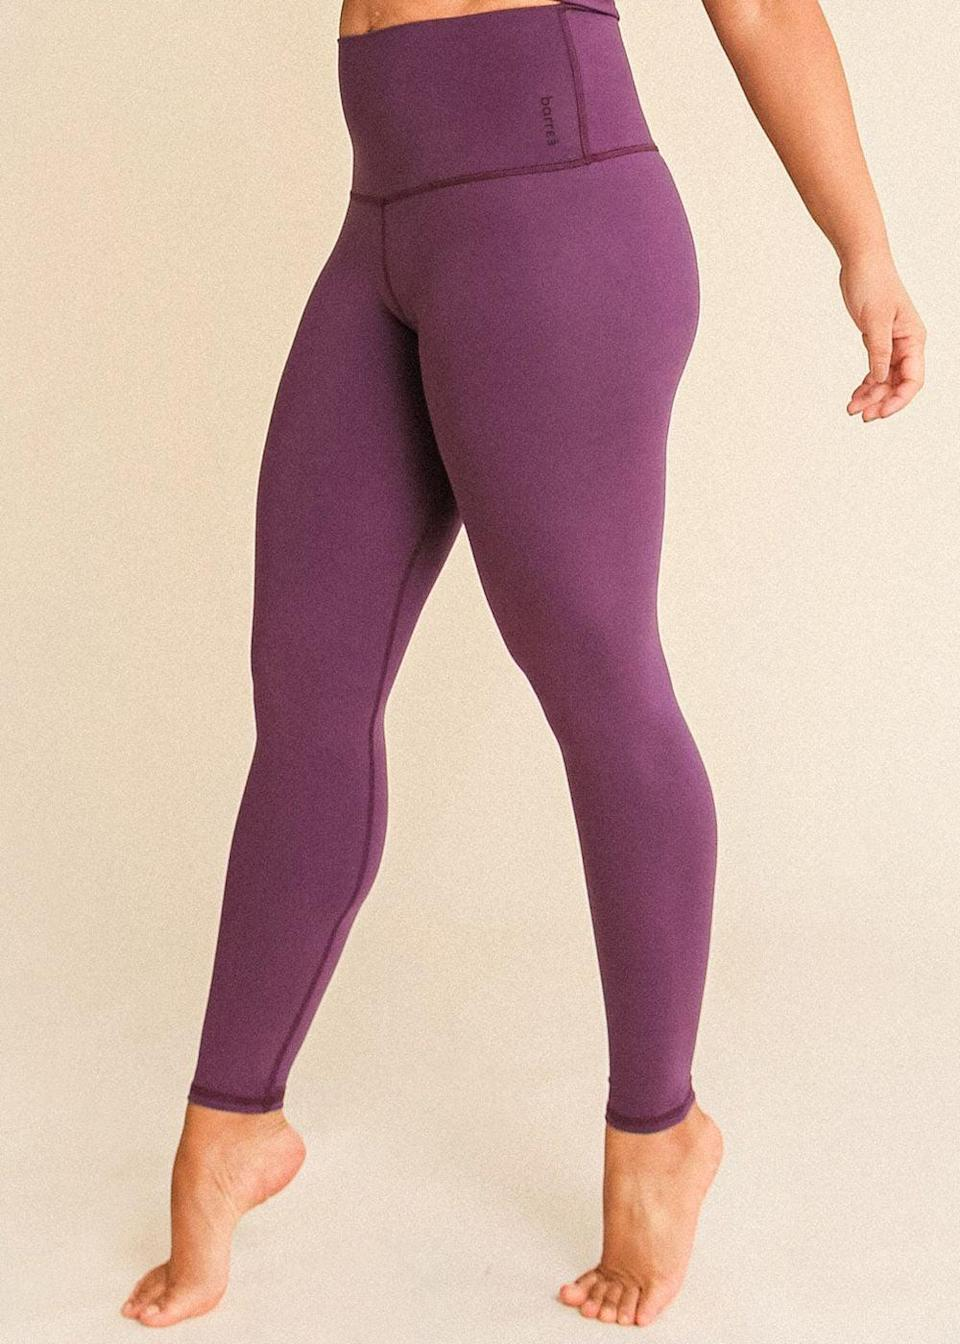 """<p>""""I've worn the <span>Barre3 Purple Sky Signature Legging</span> ($91) twice this week after the brand gifted me a pair, and they're probably the most flattering things I've put on my body in a year. The high waistline hits just right, and the fabric is incredibly soft and comfortable. No sagging at the crotch, either!"""" - MR</p>"""